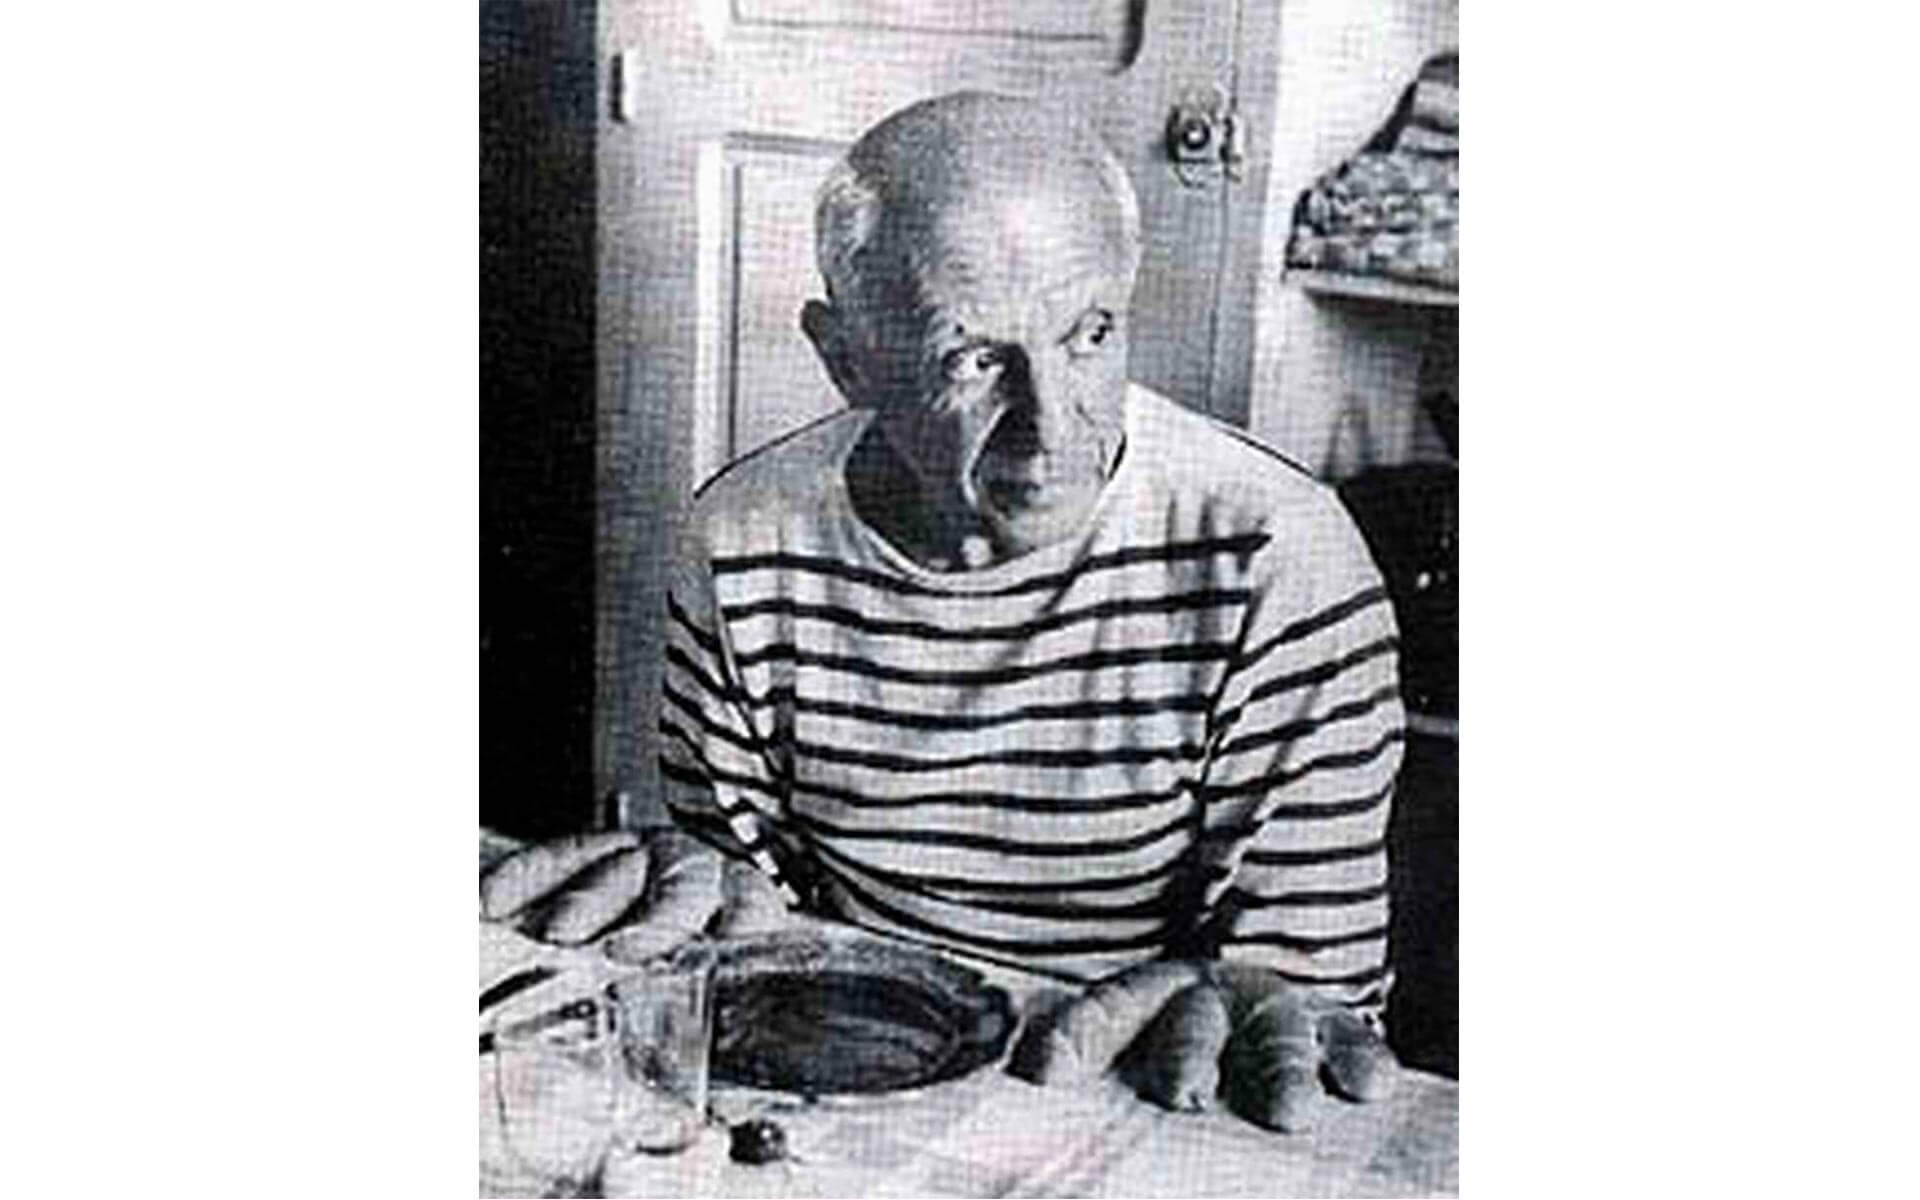 A portrait of Pablo Picasso taken by photographer Robert Doisneau.